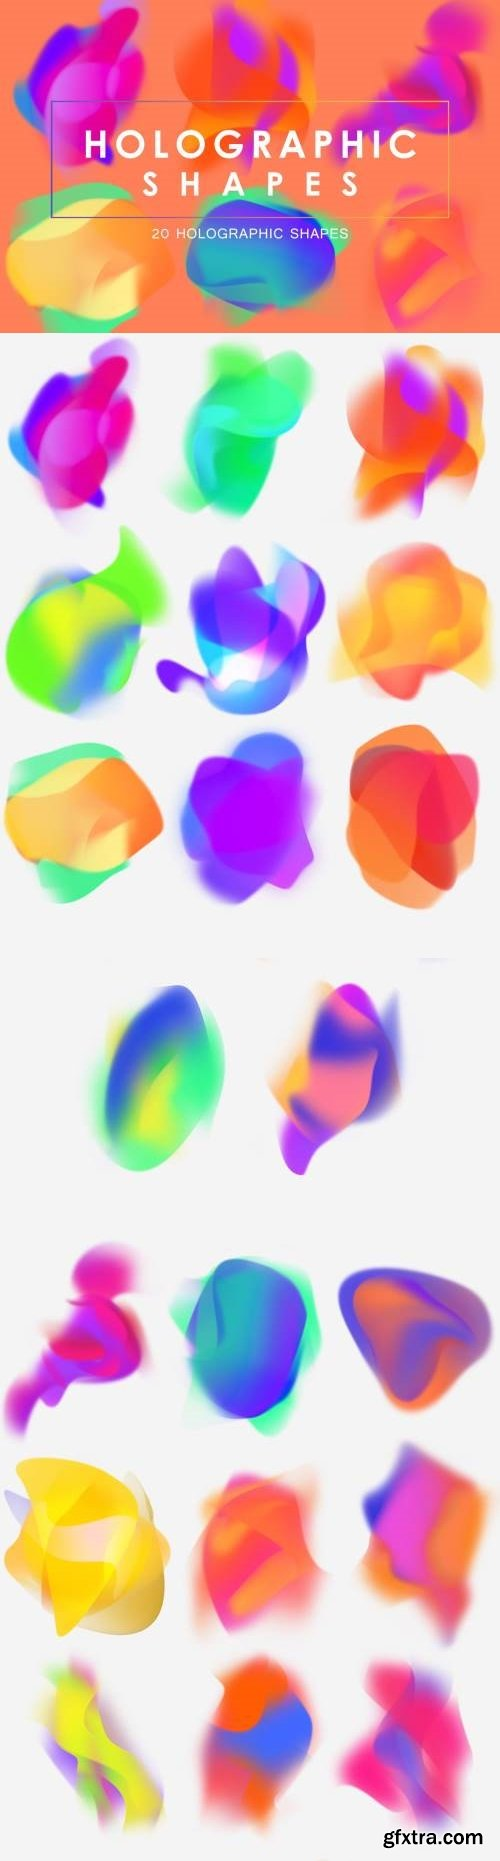 20 Holographic Shapes